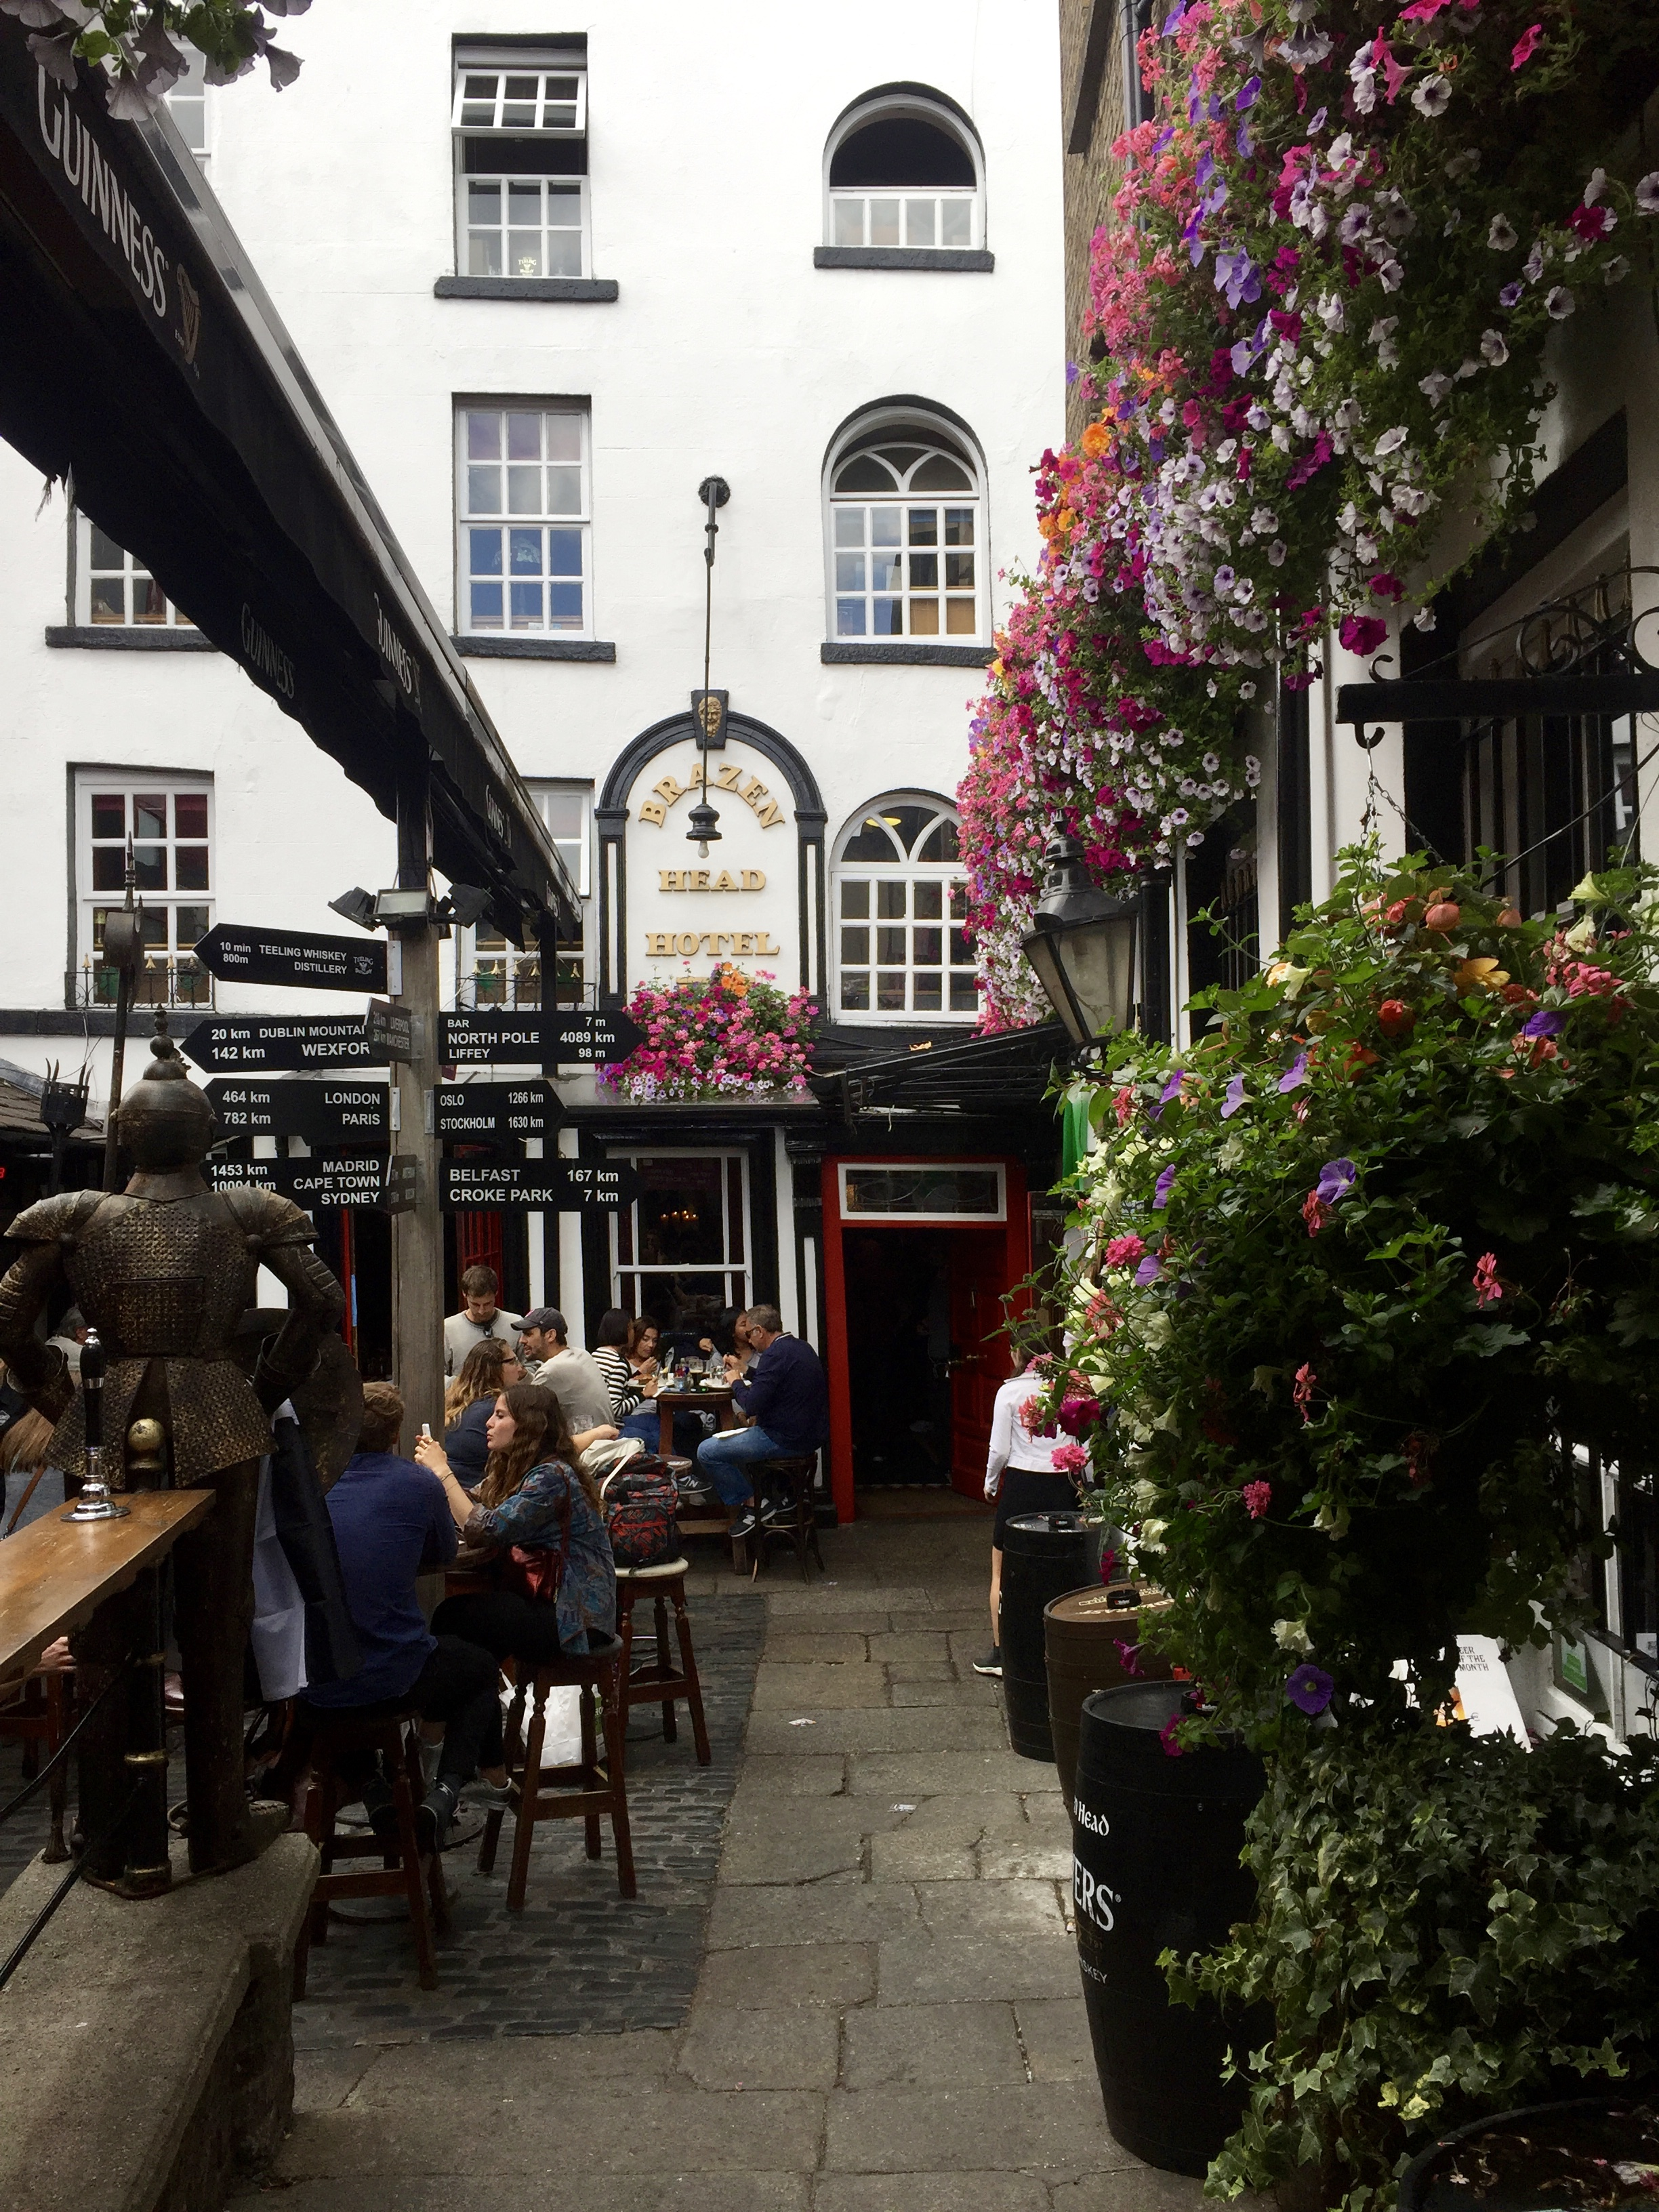 The patio at the Brazen Head featured a separate outside bar.